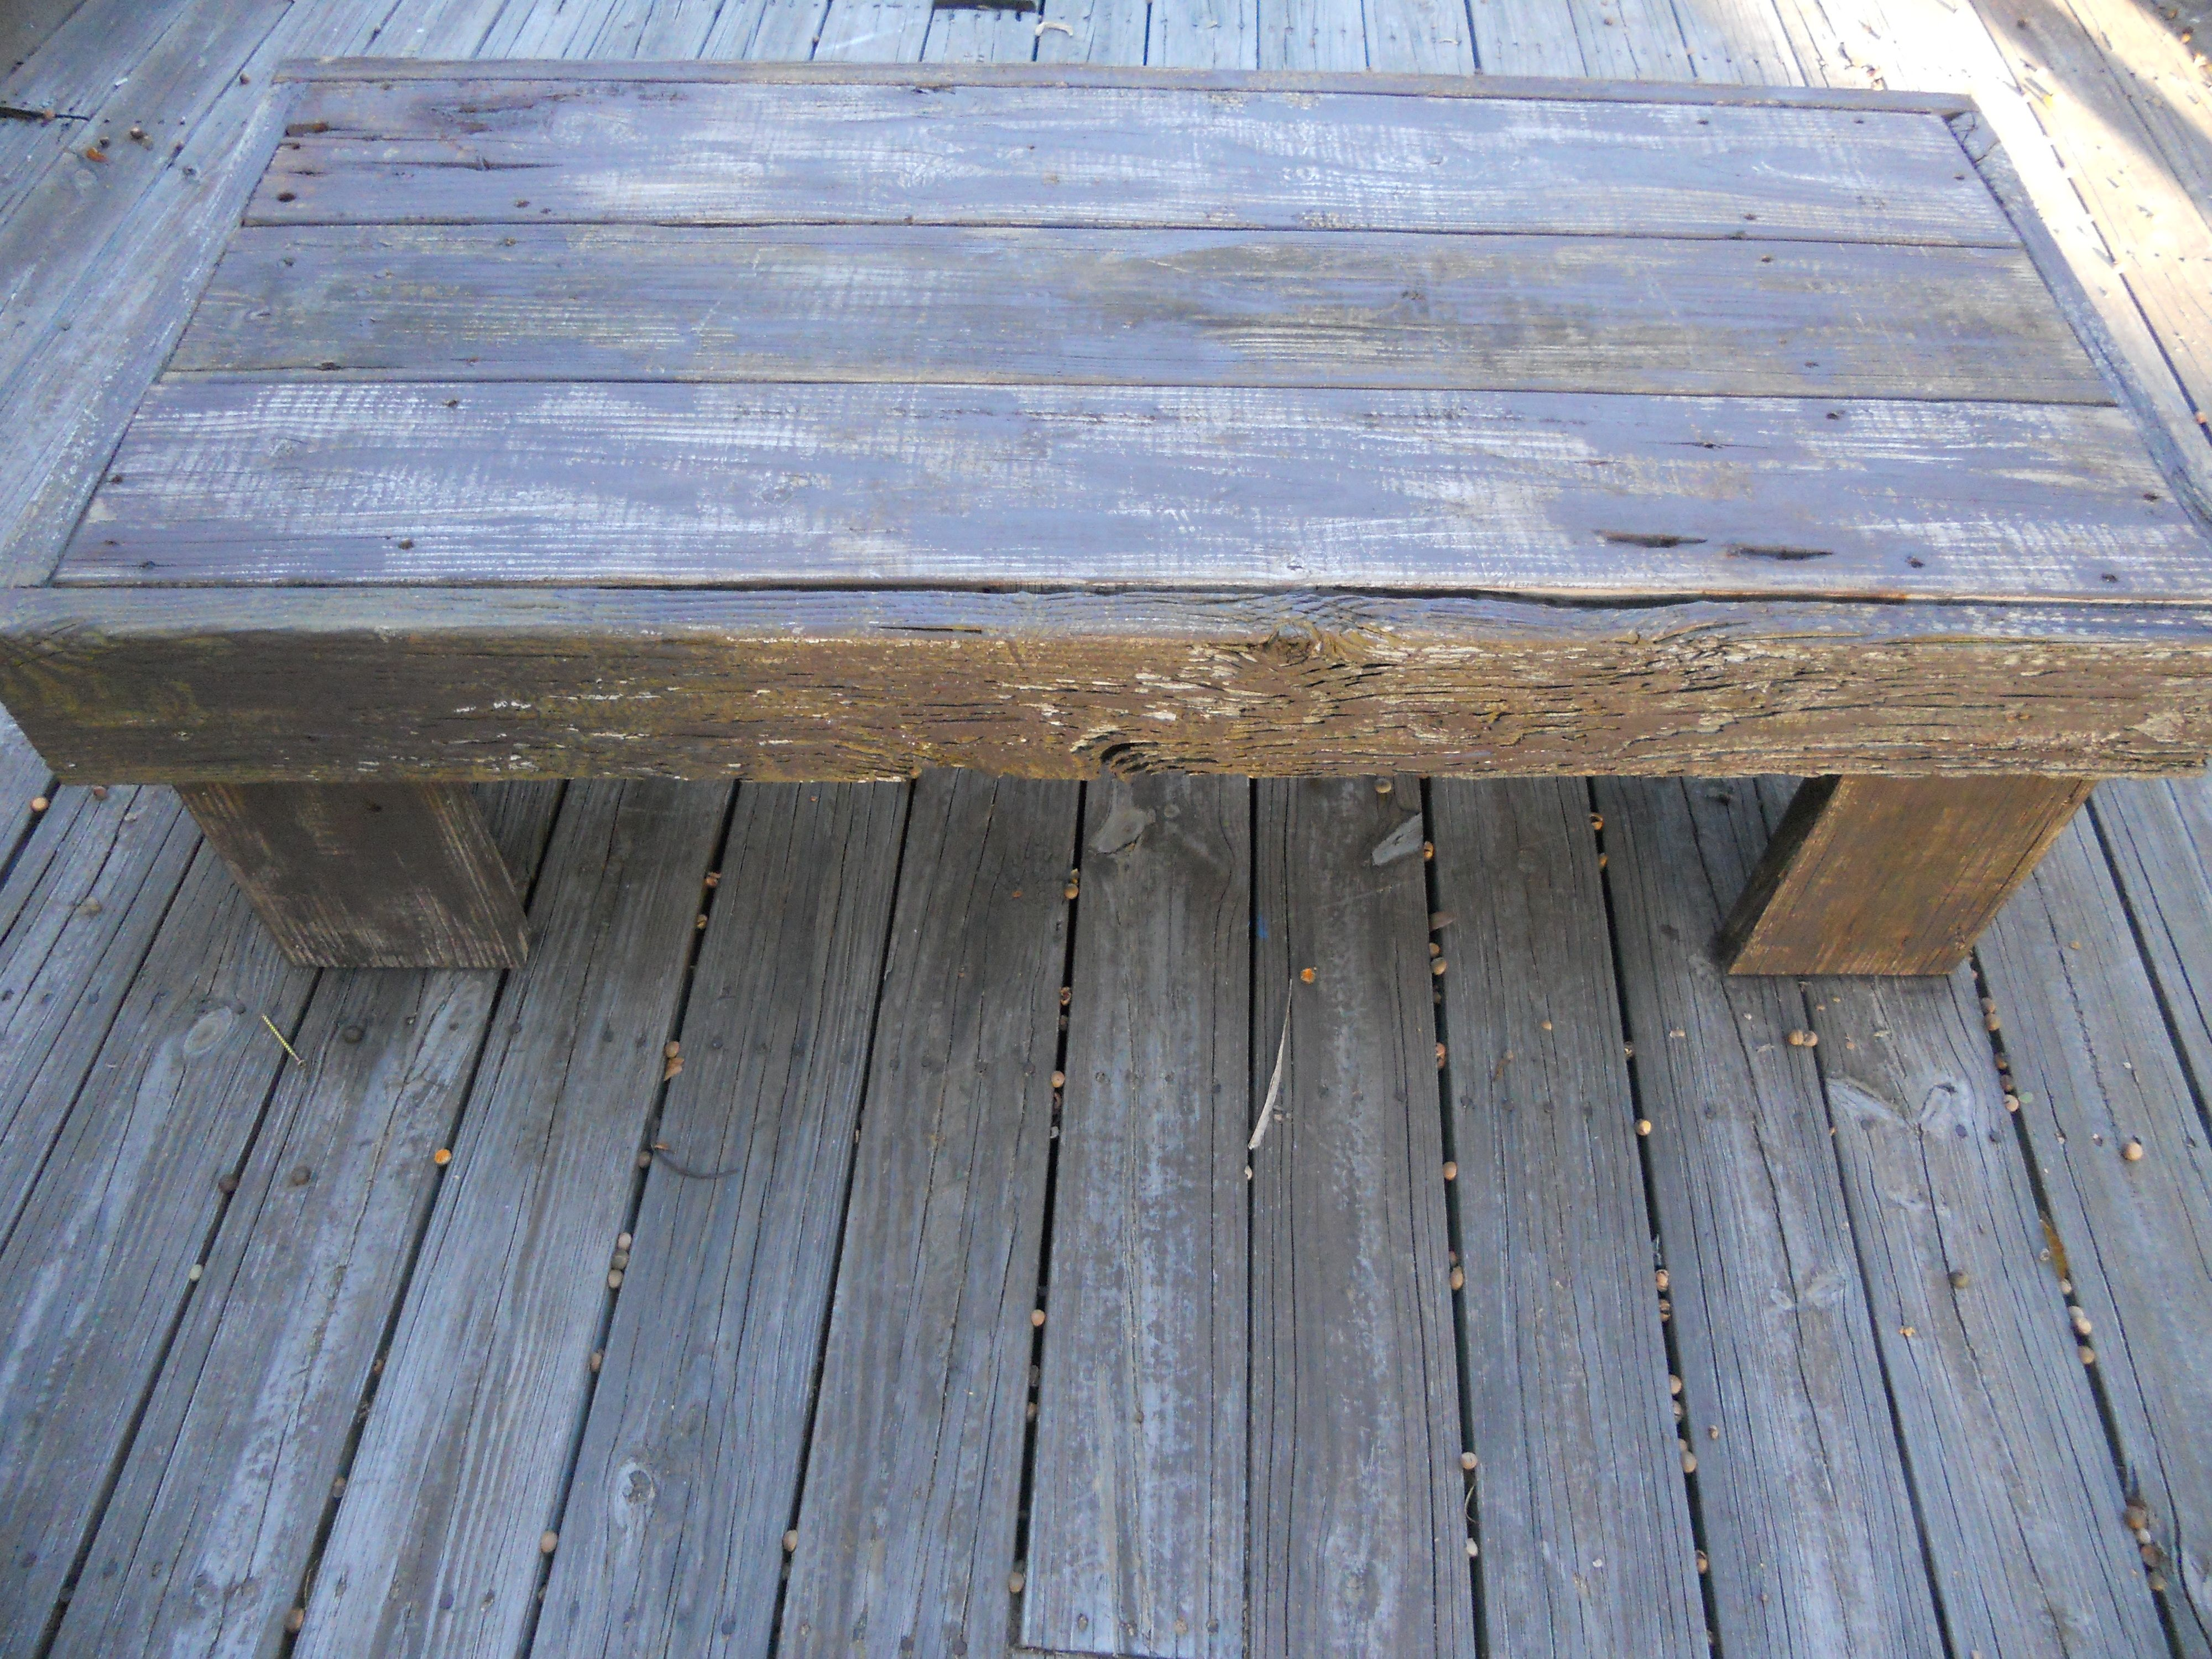 Very Impressive portraiture of Coffee table made from old dock wood. Table Pinterest with #475B84 color and 4000x3000 pixels